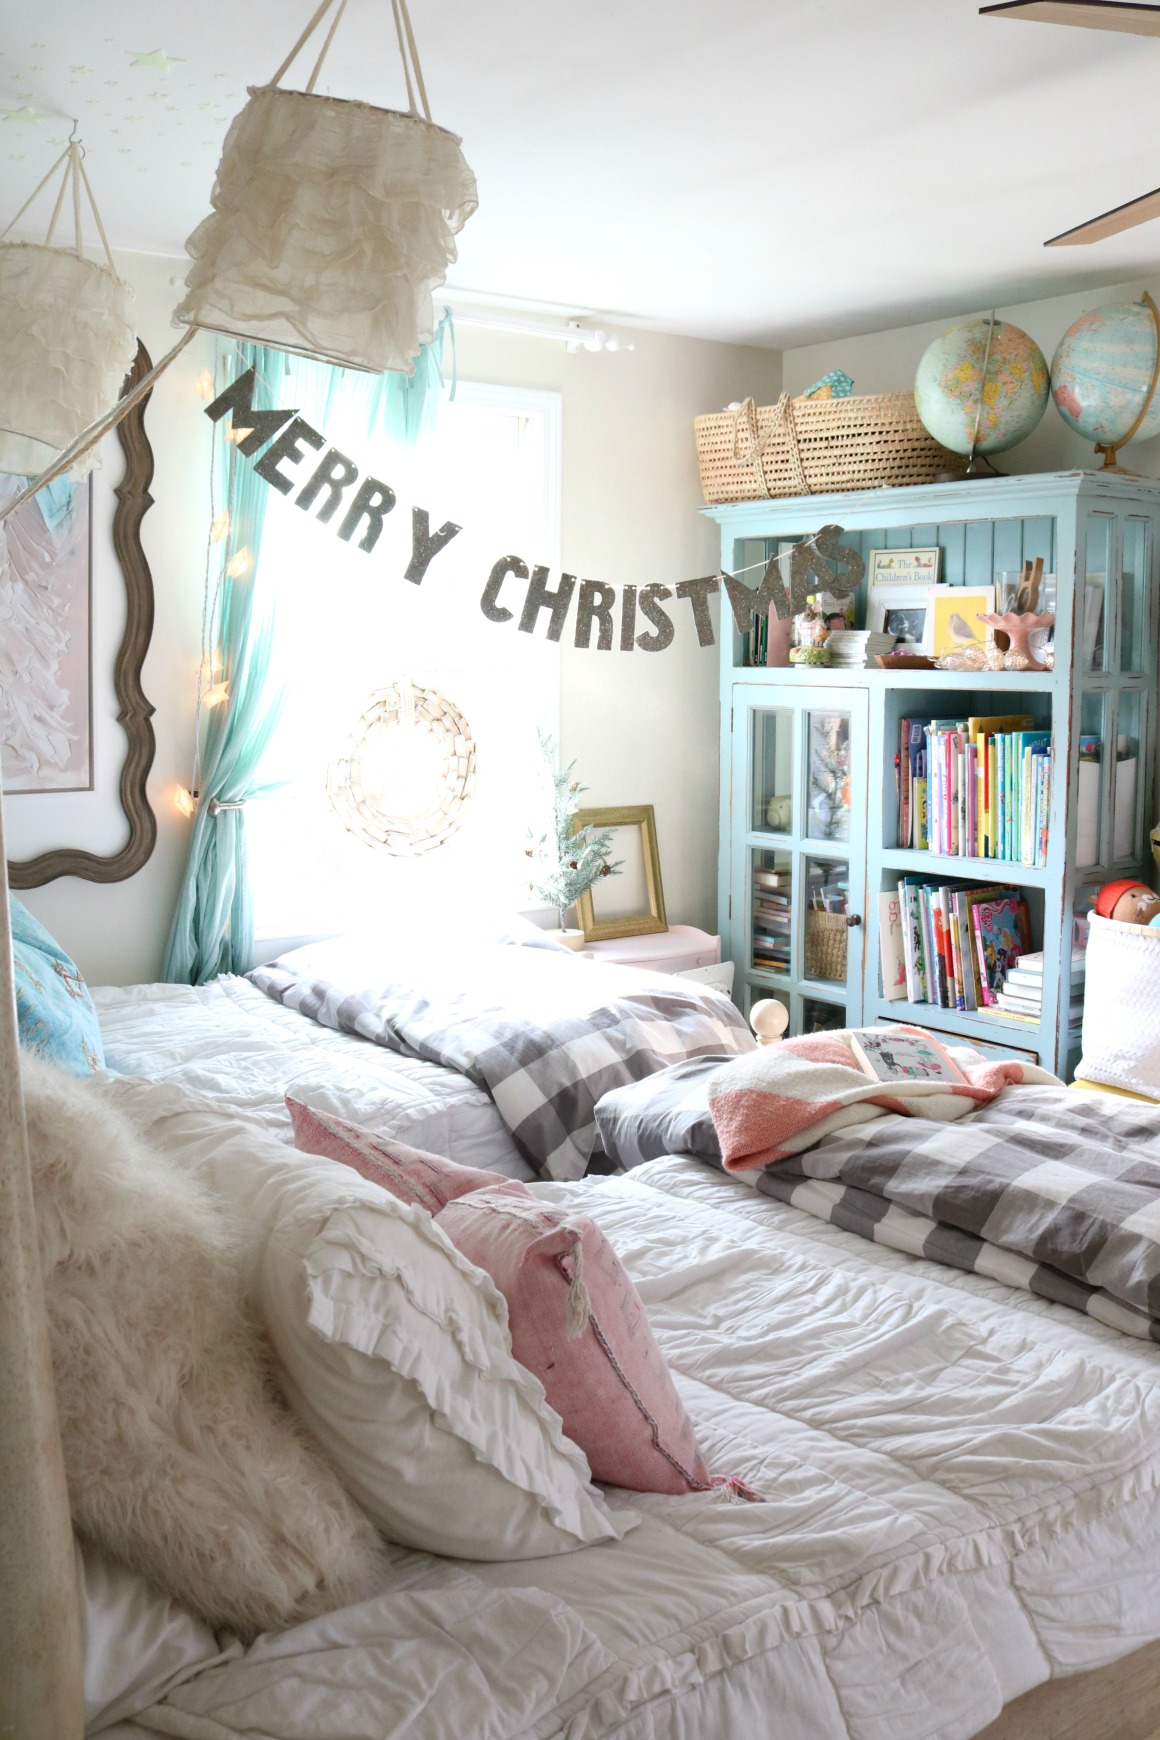 Christmas Decor in a Small Cape- Girls Shared Bedroom 0367